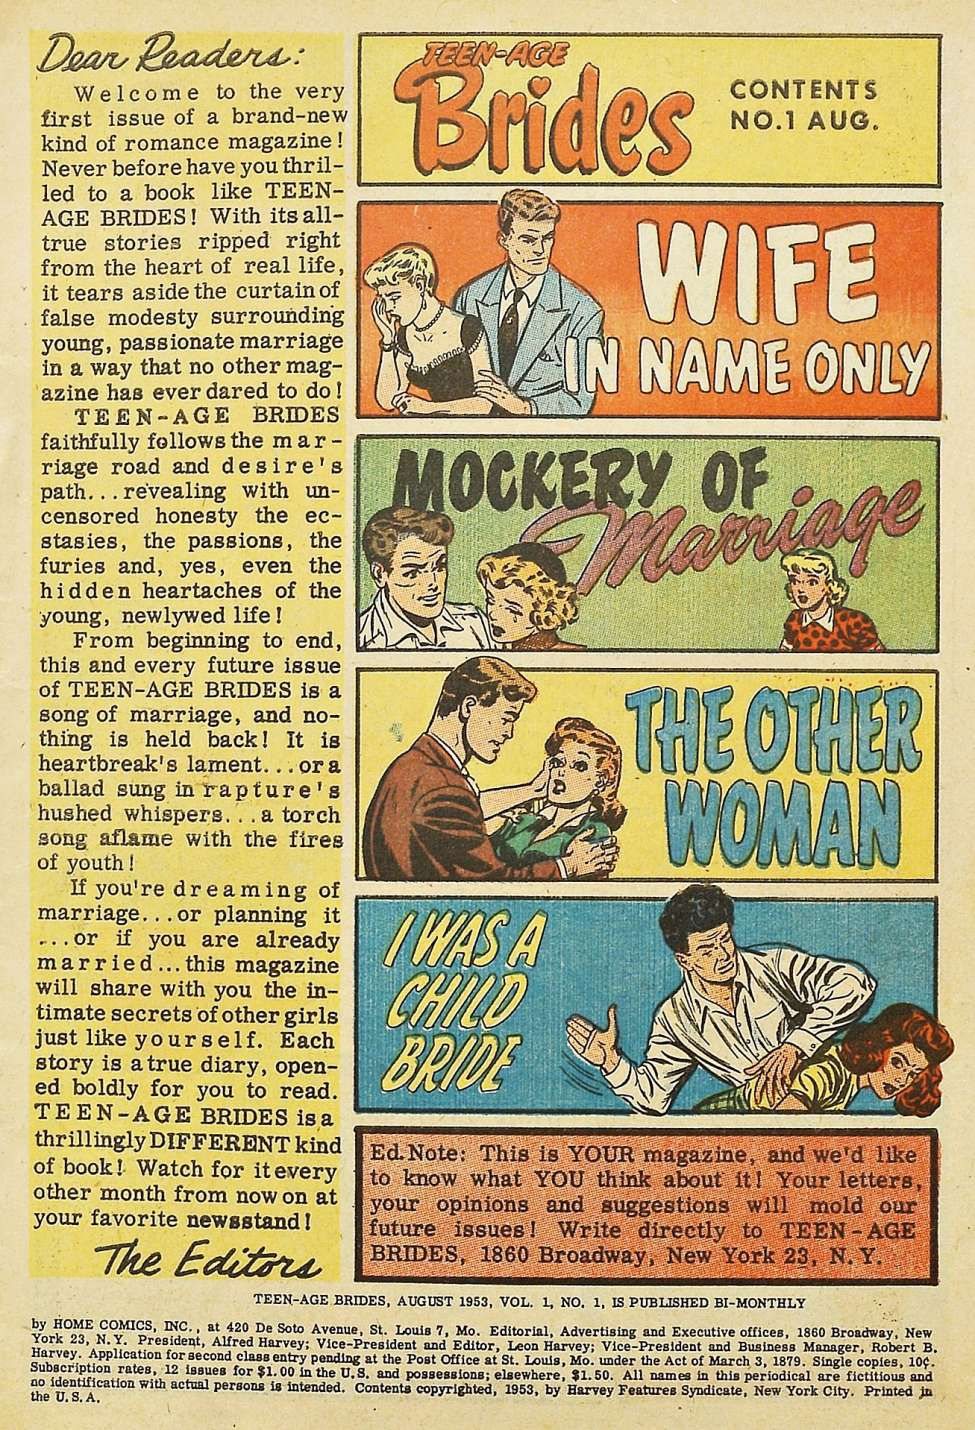 """Image of """"Dear Readers"""" page from inside Teen-Age Brides, saying it """"tears aside the curtain of false modesty surrounding young, passionate marriage."""" The image for """"I Was a Child Bride"""" shows a man about to spank a (clothed) young woman."""